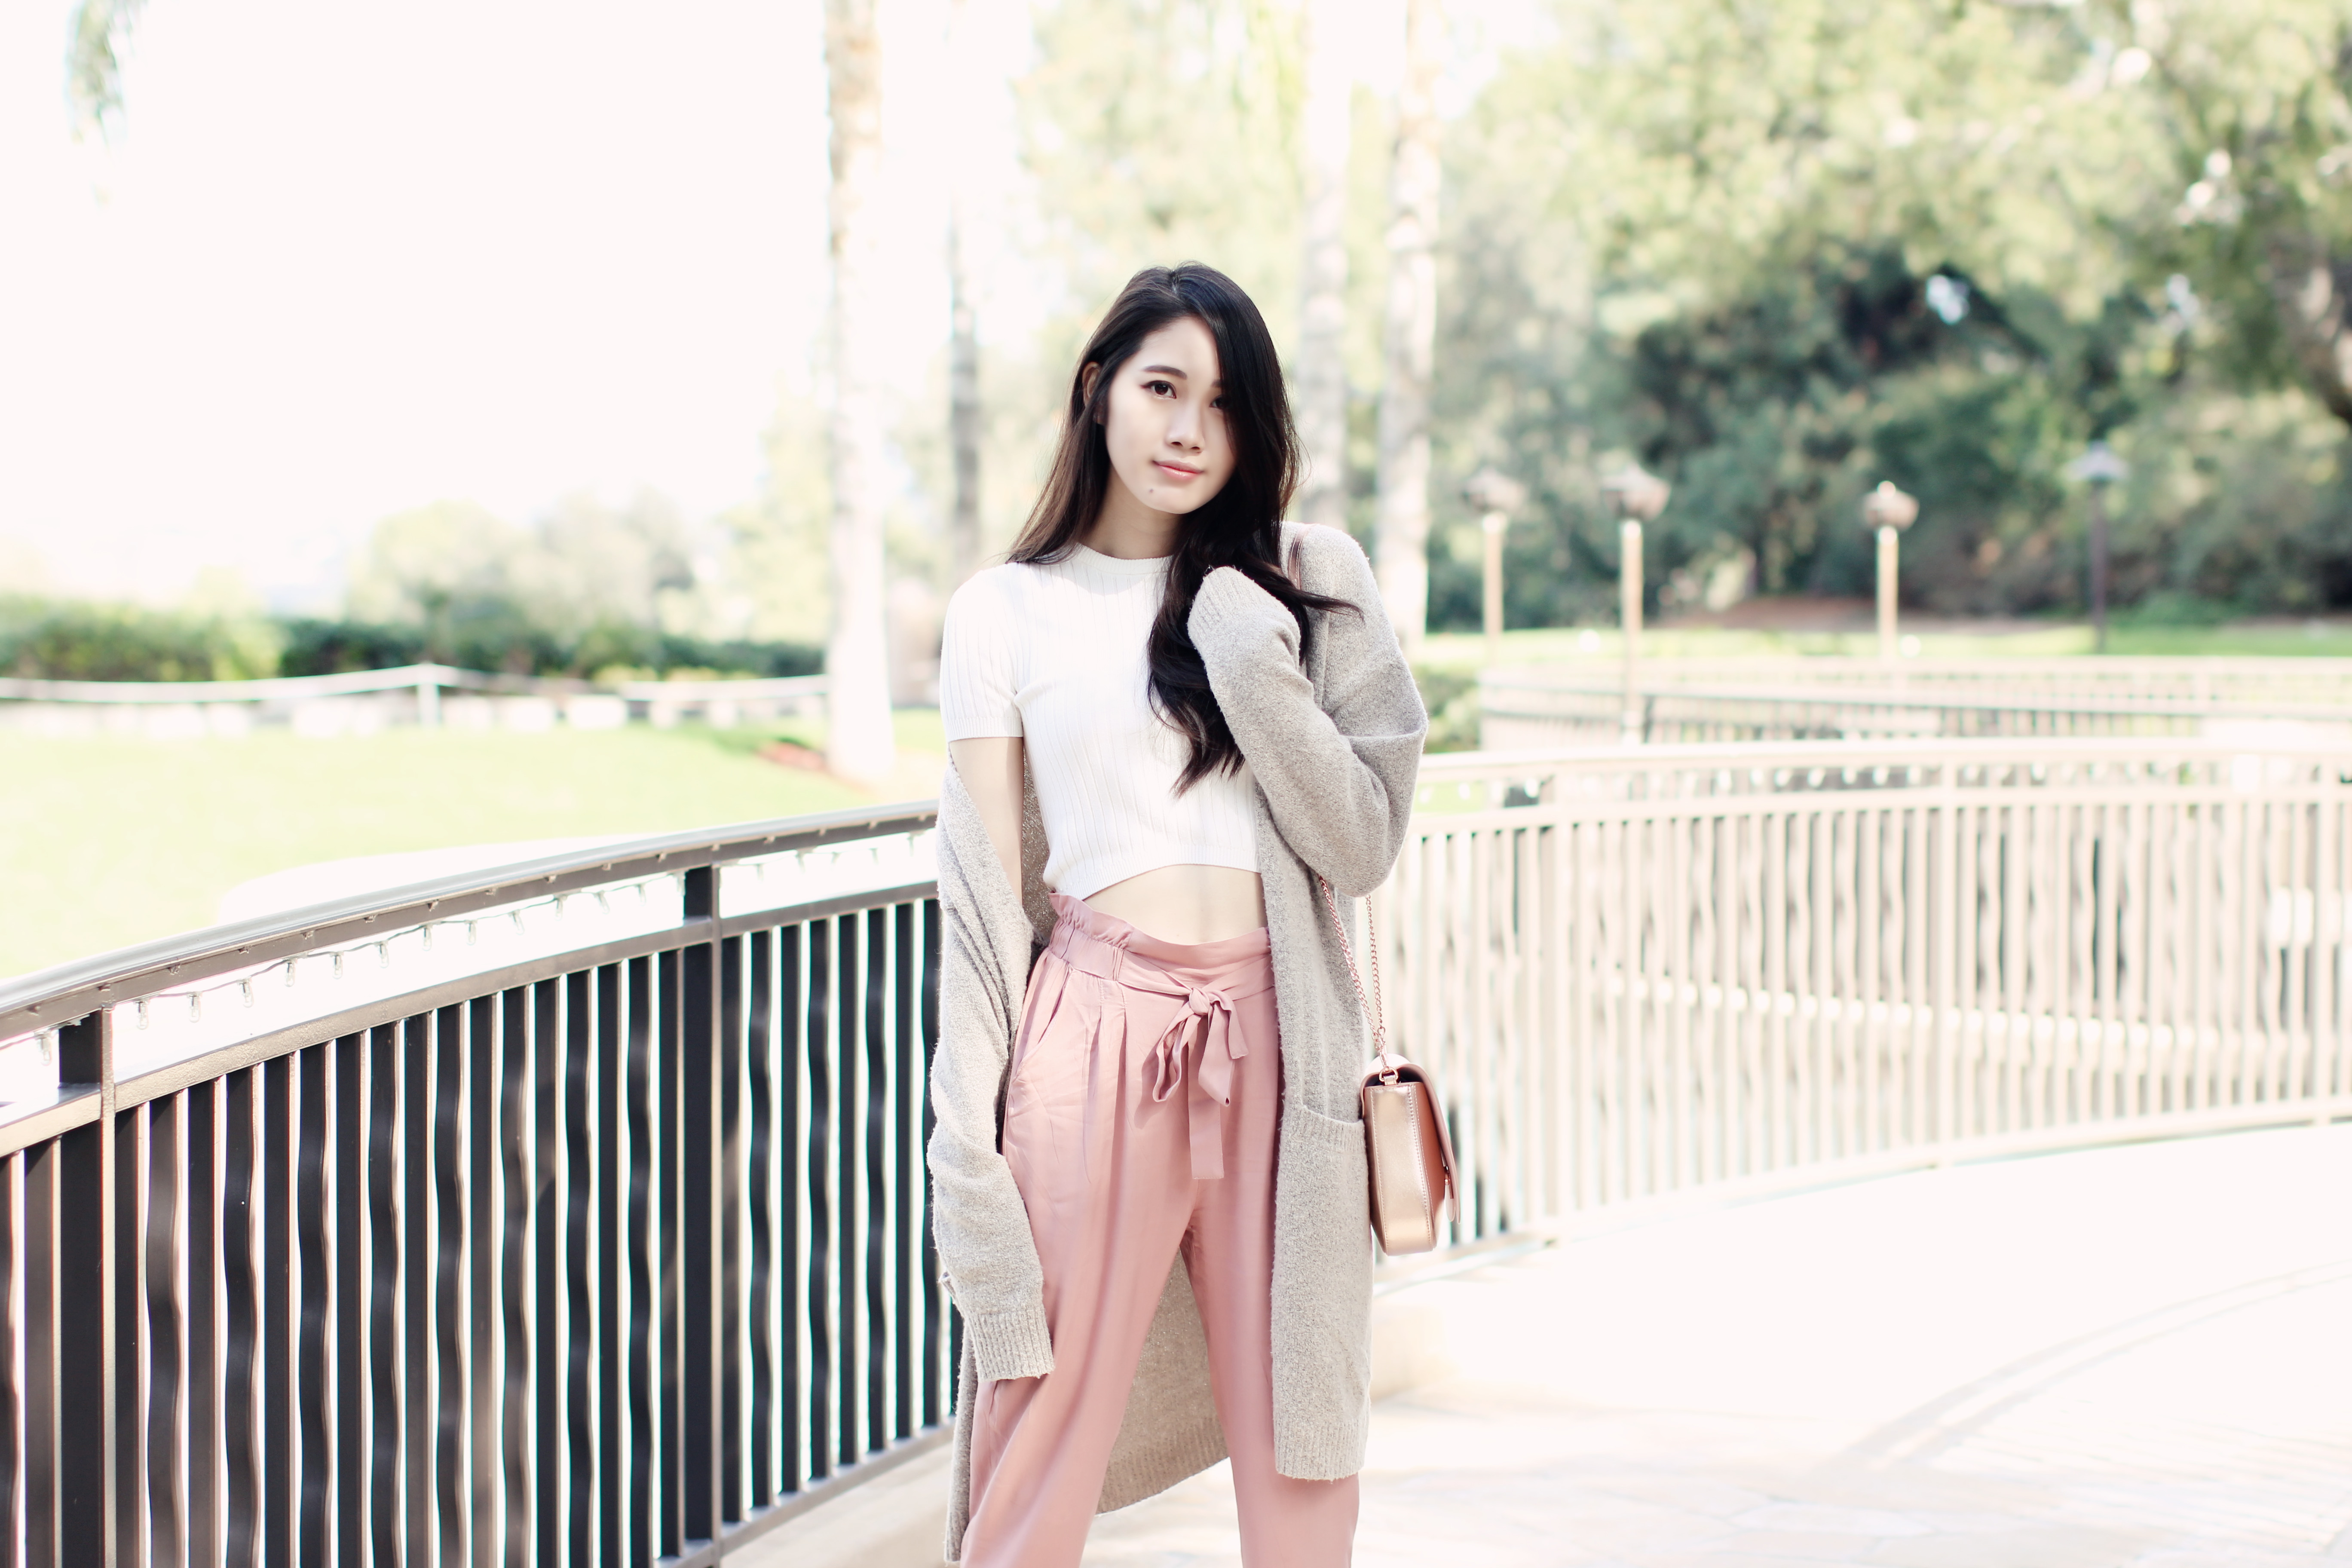 4558-ootd-fashion-style-outfitoftheday-wiwt-streetstyle-forever21-f21xme-anyahindmarch-ninewest-trousers-elizabeeetht-clothestoyouuu